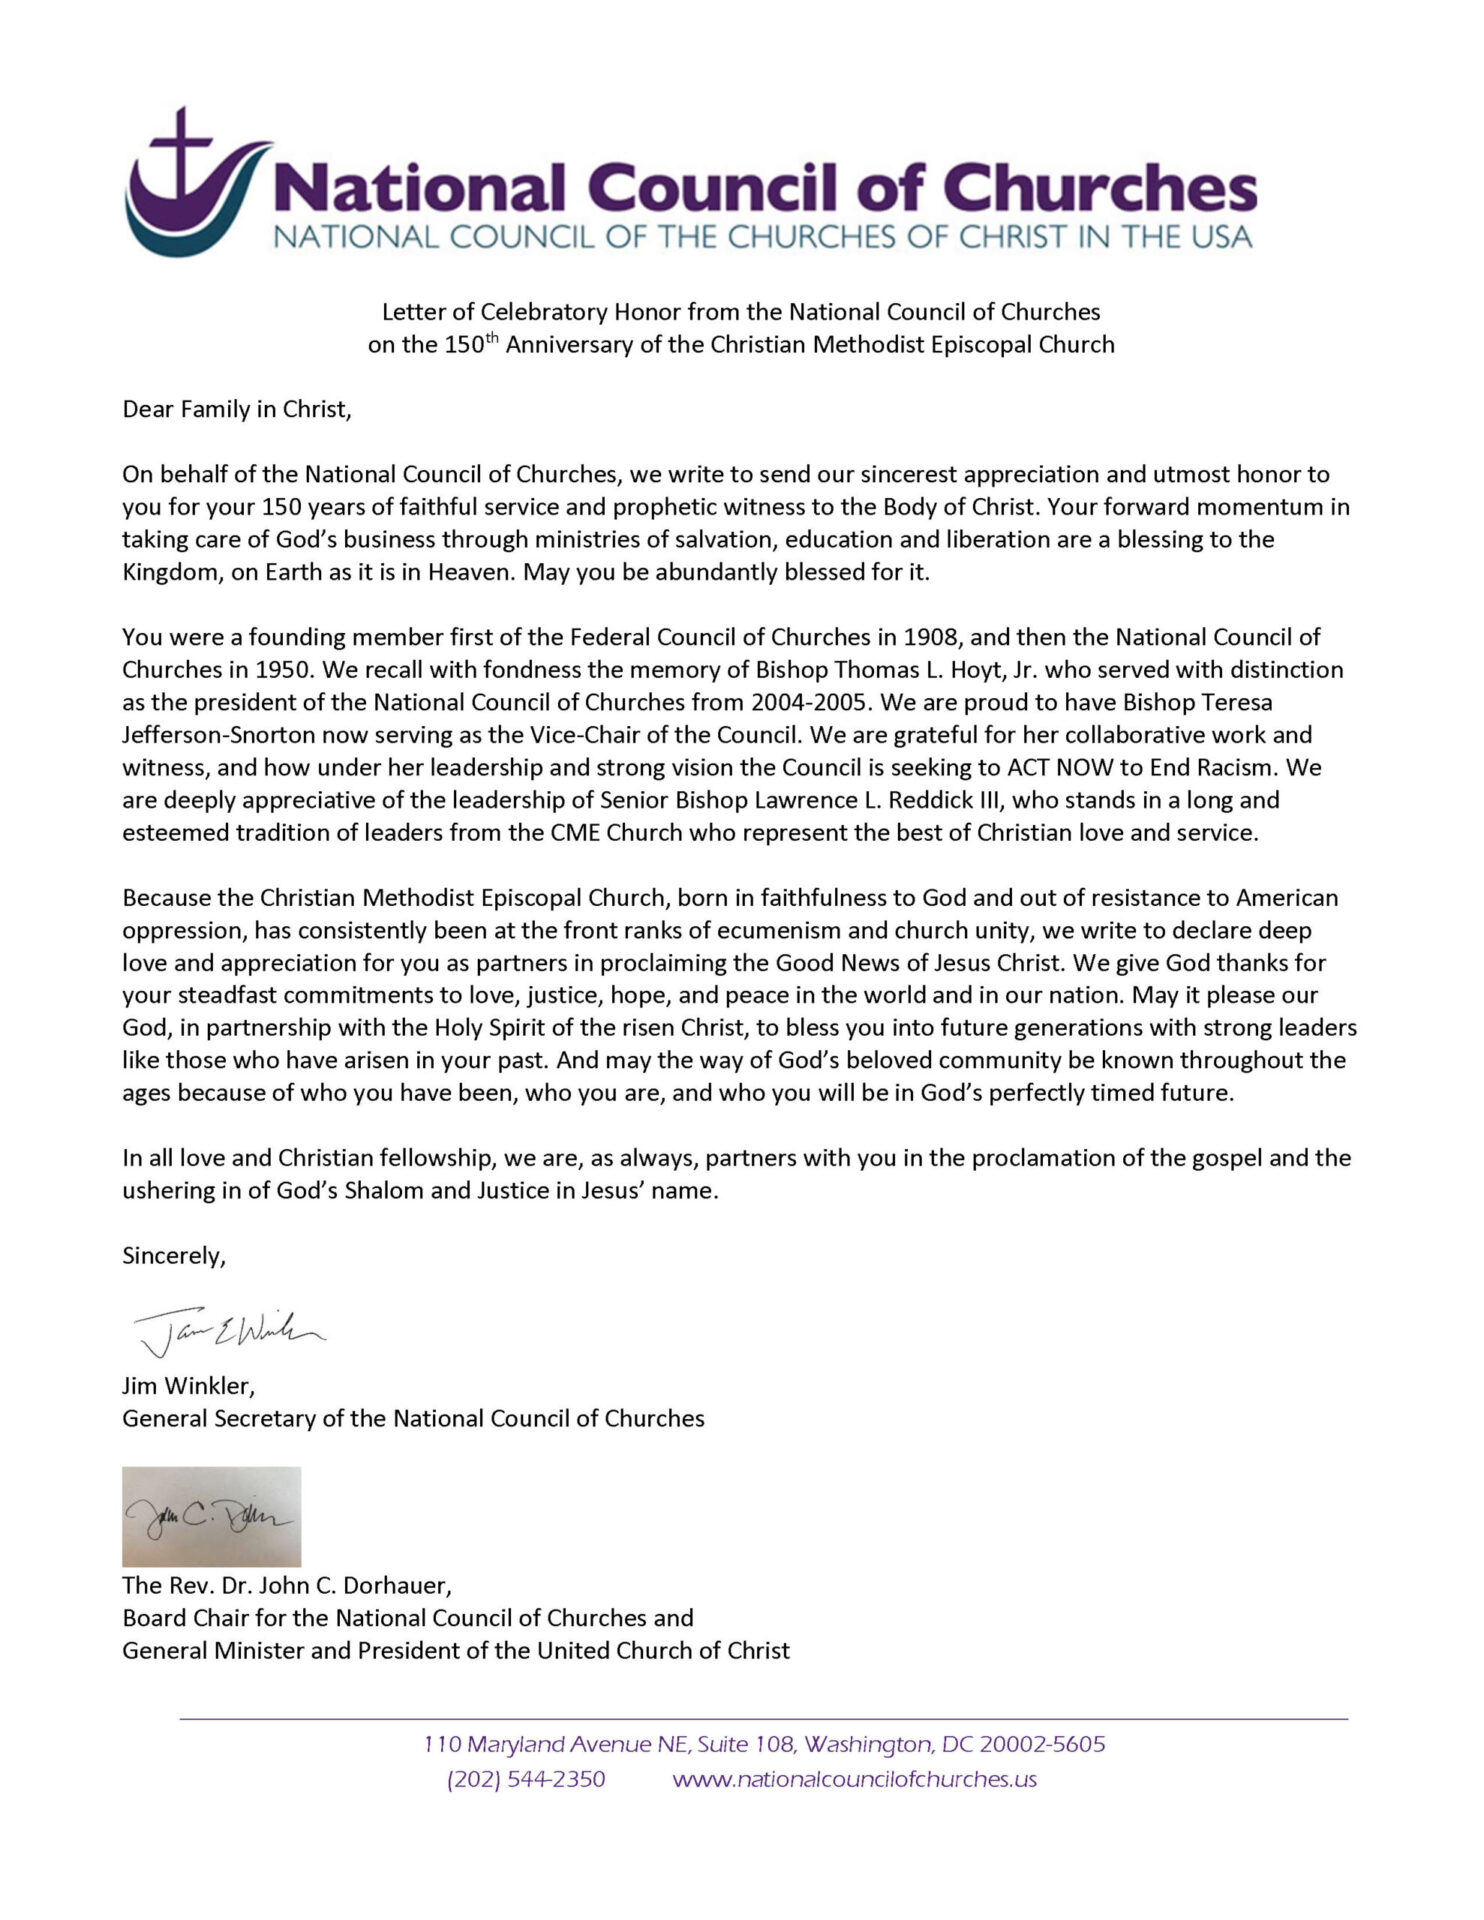 Letter Honoring CME 150 Anniversary from National Council of Churches